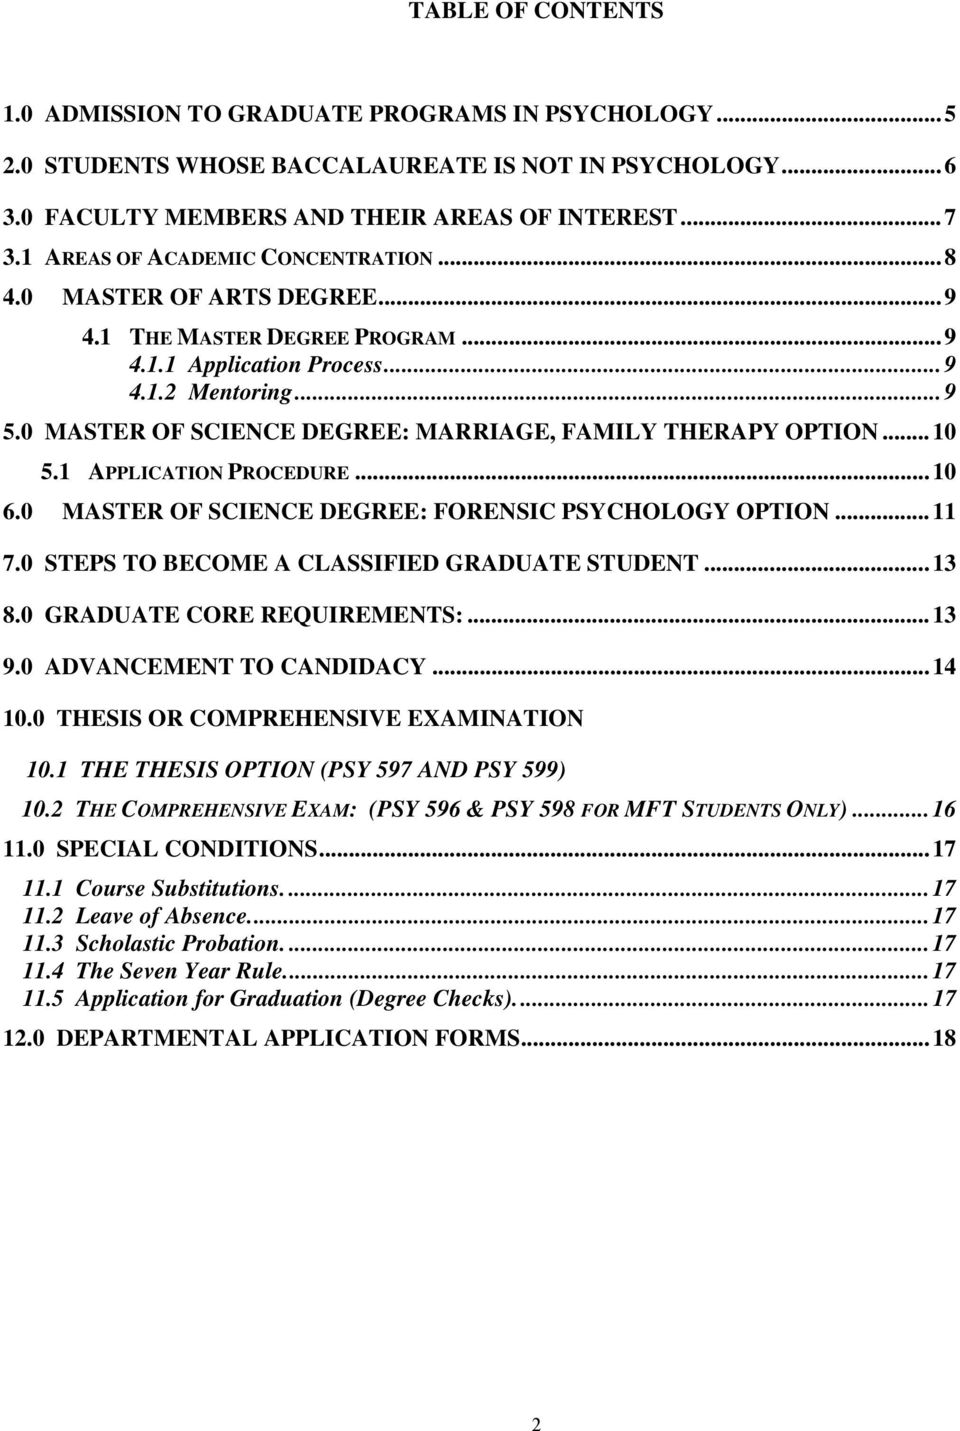 0 MASTER OF SCIENCE DEGREE: MARRIAGE, FAMILY THERAPY OPTION...10 5.1 APPLICATION PROCEDURE...10 6.0 MASTER OF SCIENCE DEGREE: FORENSIC PSYCHOLOGY OPTION...11 7.